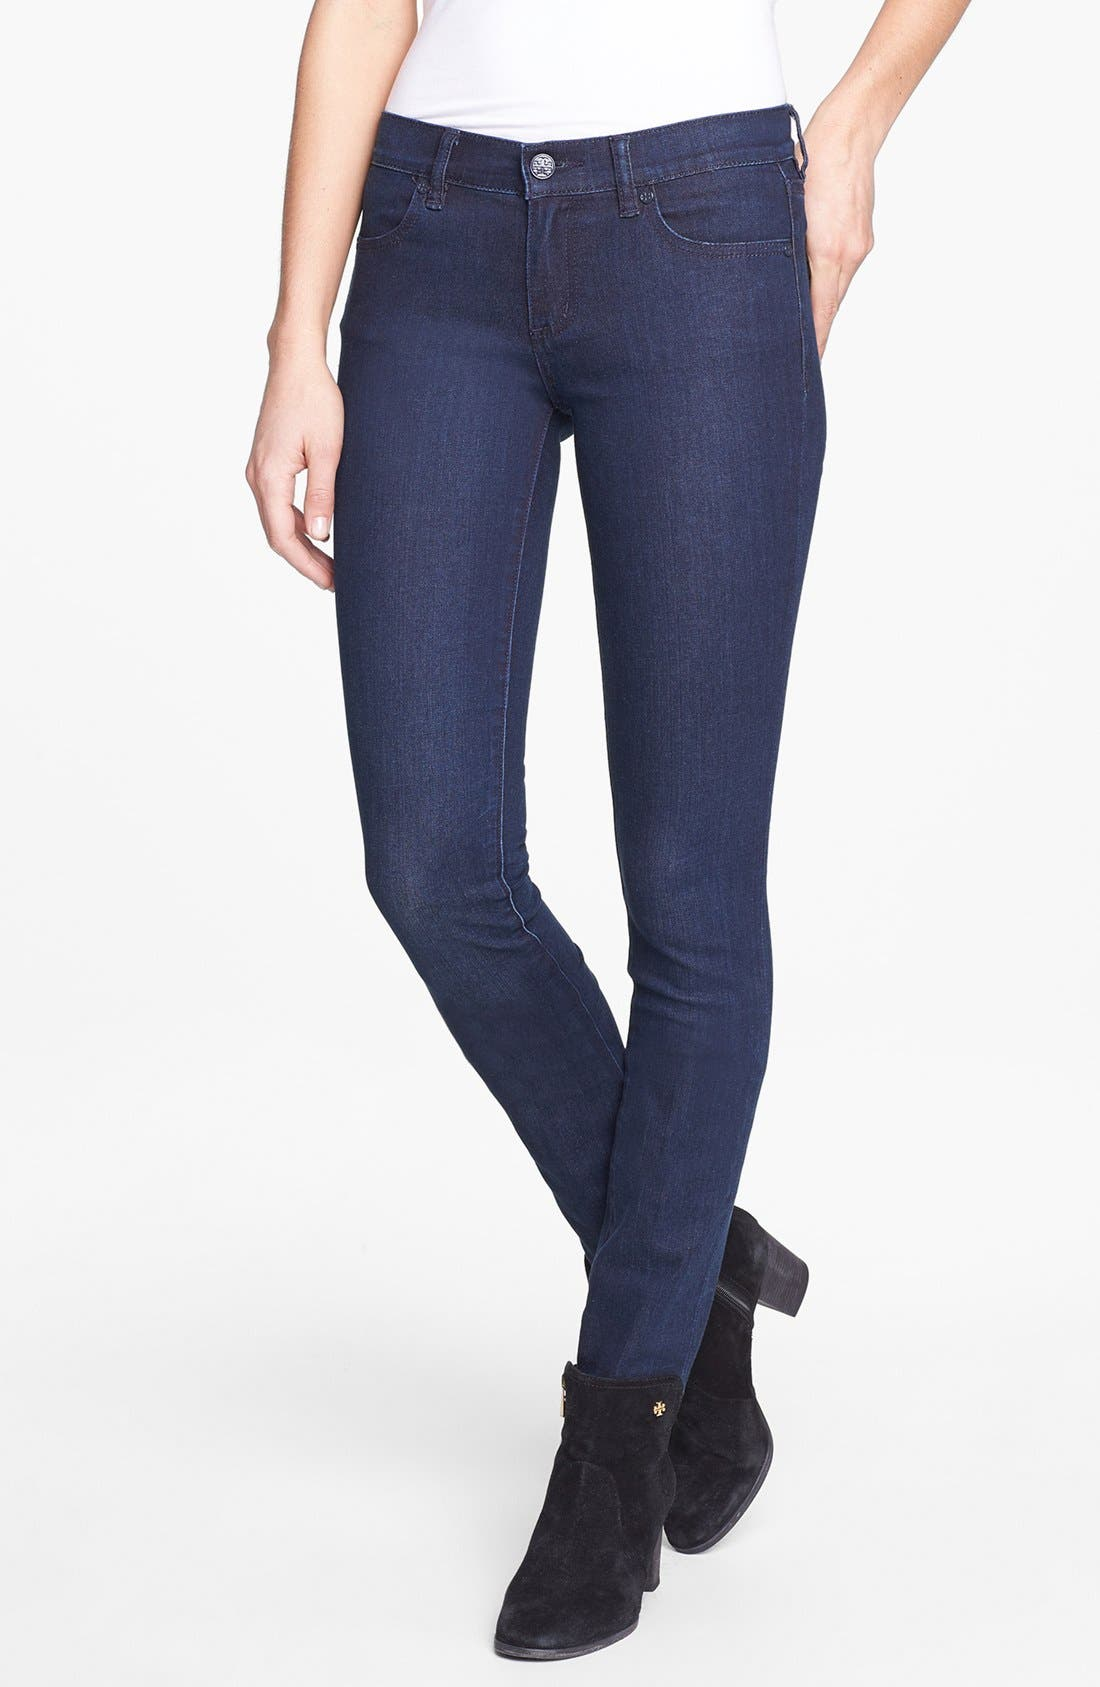 Main Image - Tory Burch Stretch Skinny Jeans (Rinse)